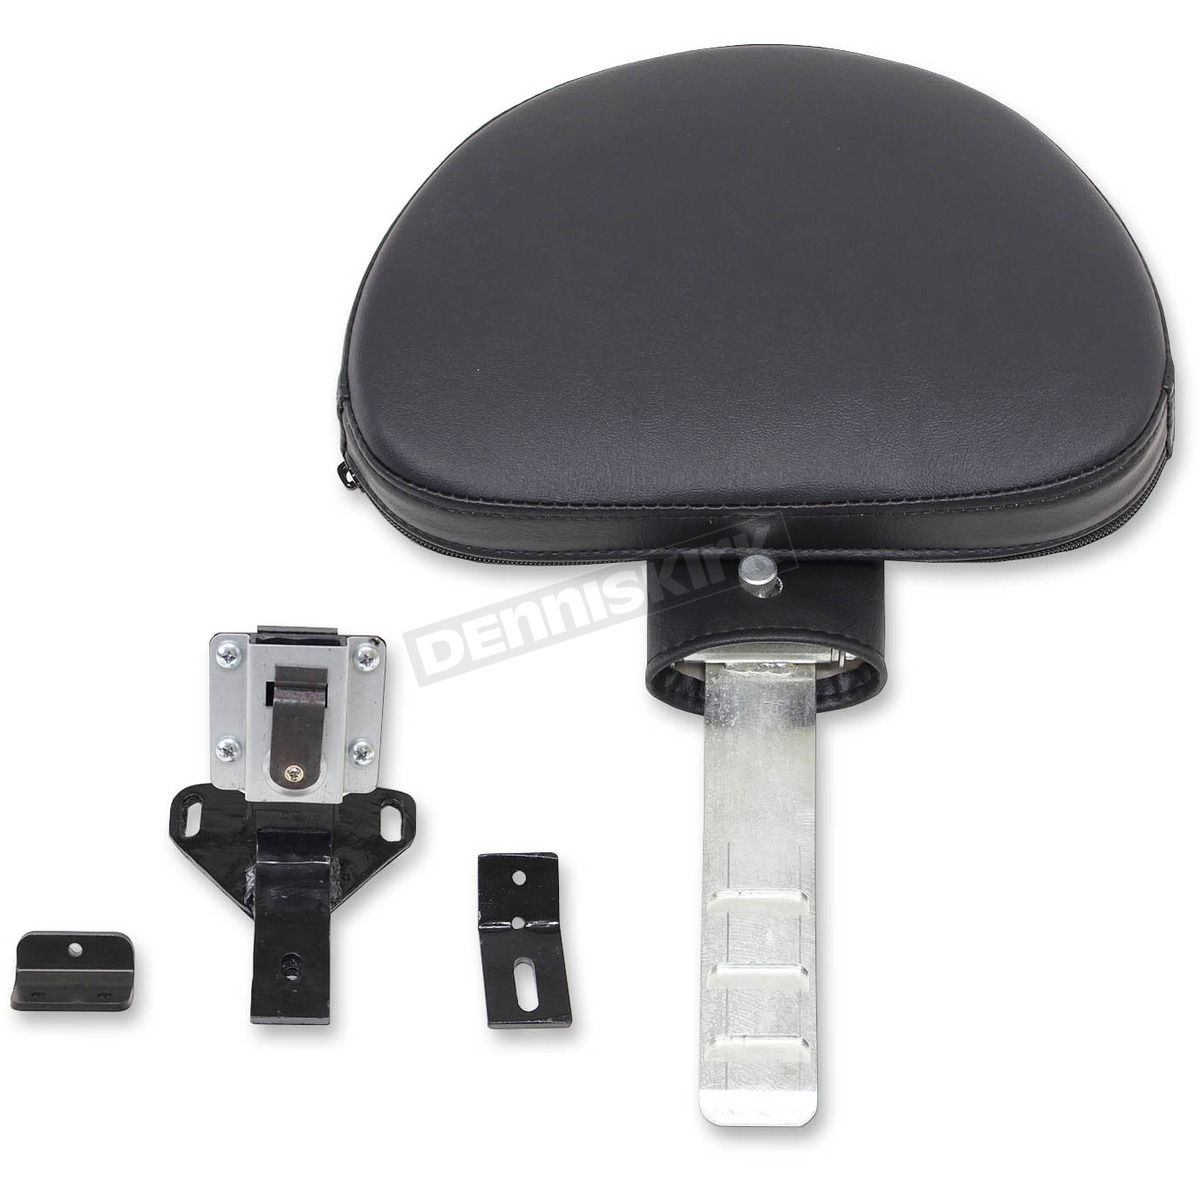 saddlemen road sofa ls seat reviews how to repair leather cat scratch driver backrest lb11567ls harley